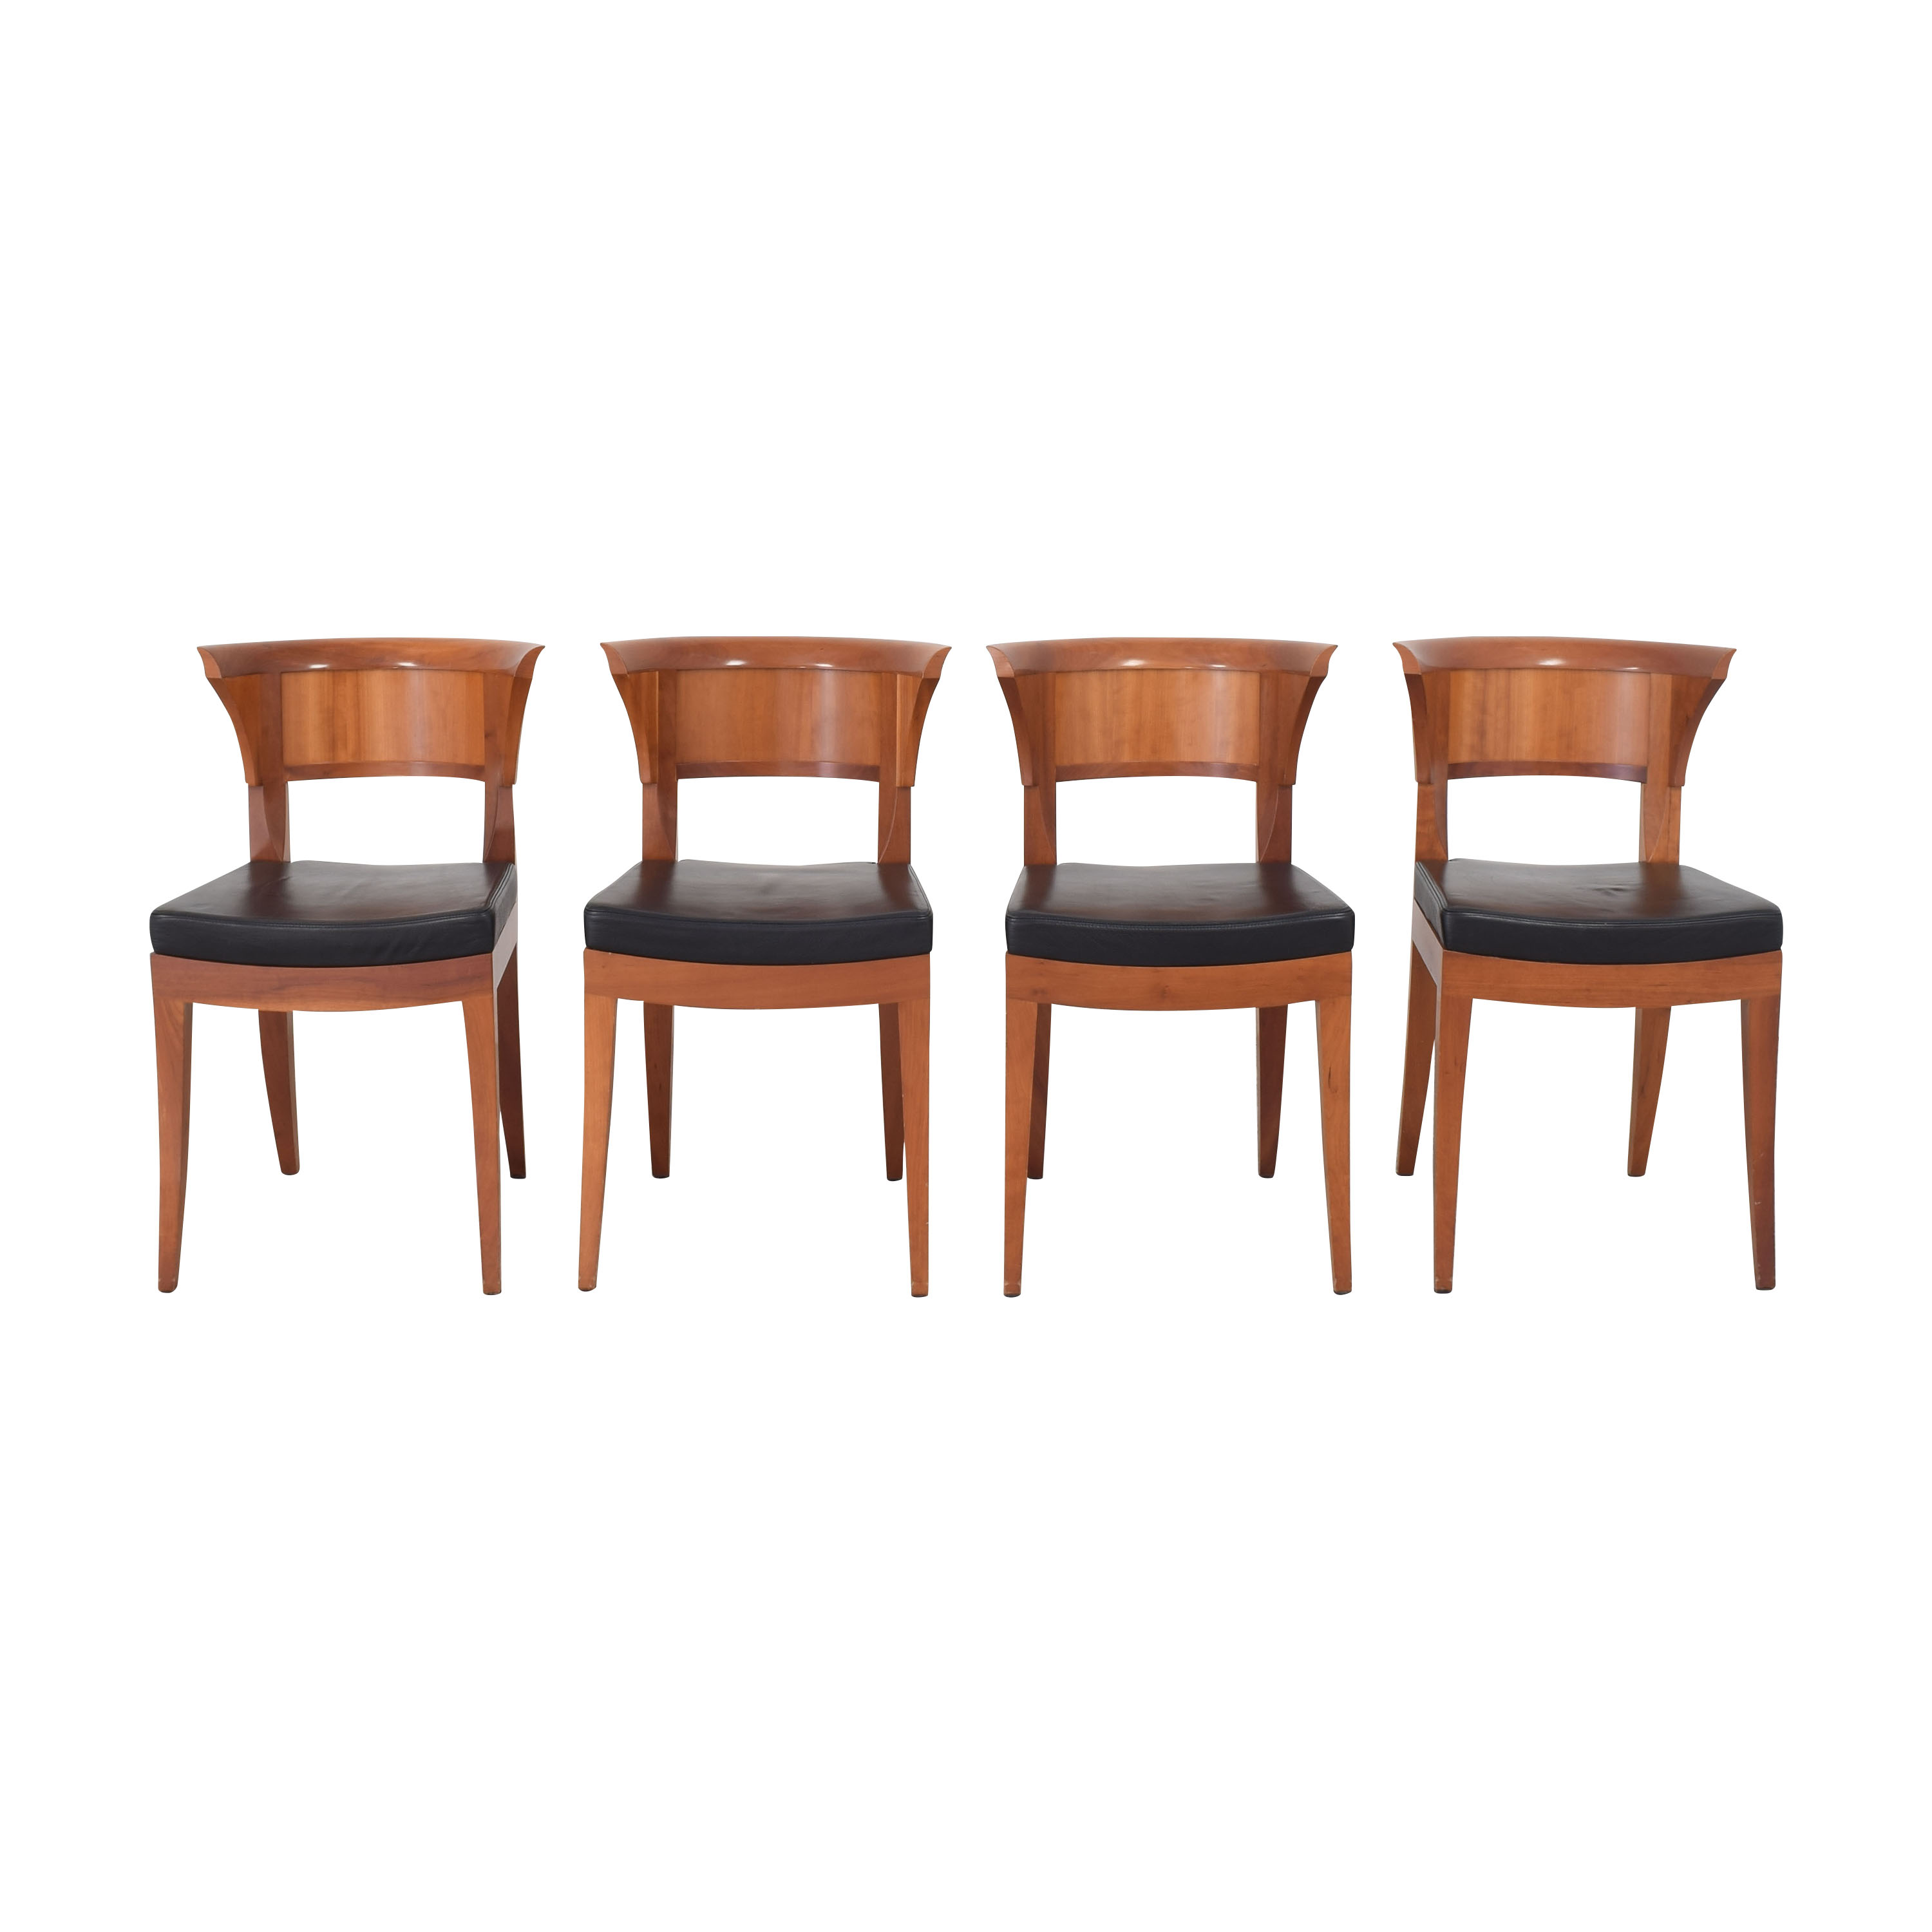 Giorgetti Giorgetti Dining Side Chairs by Lèon Krier Chairs